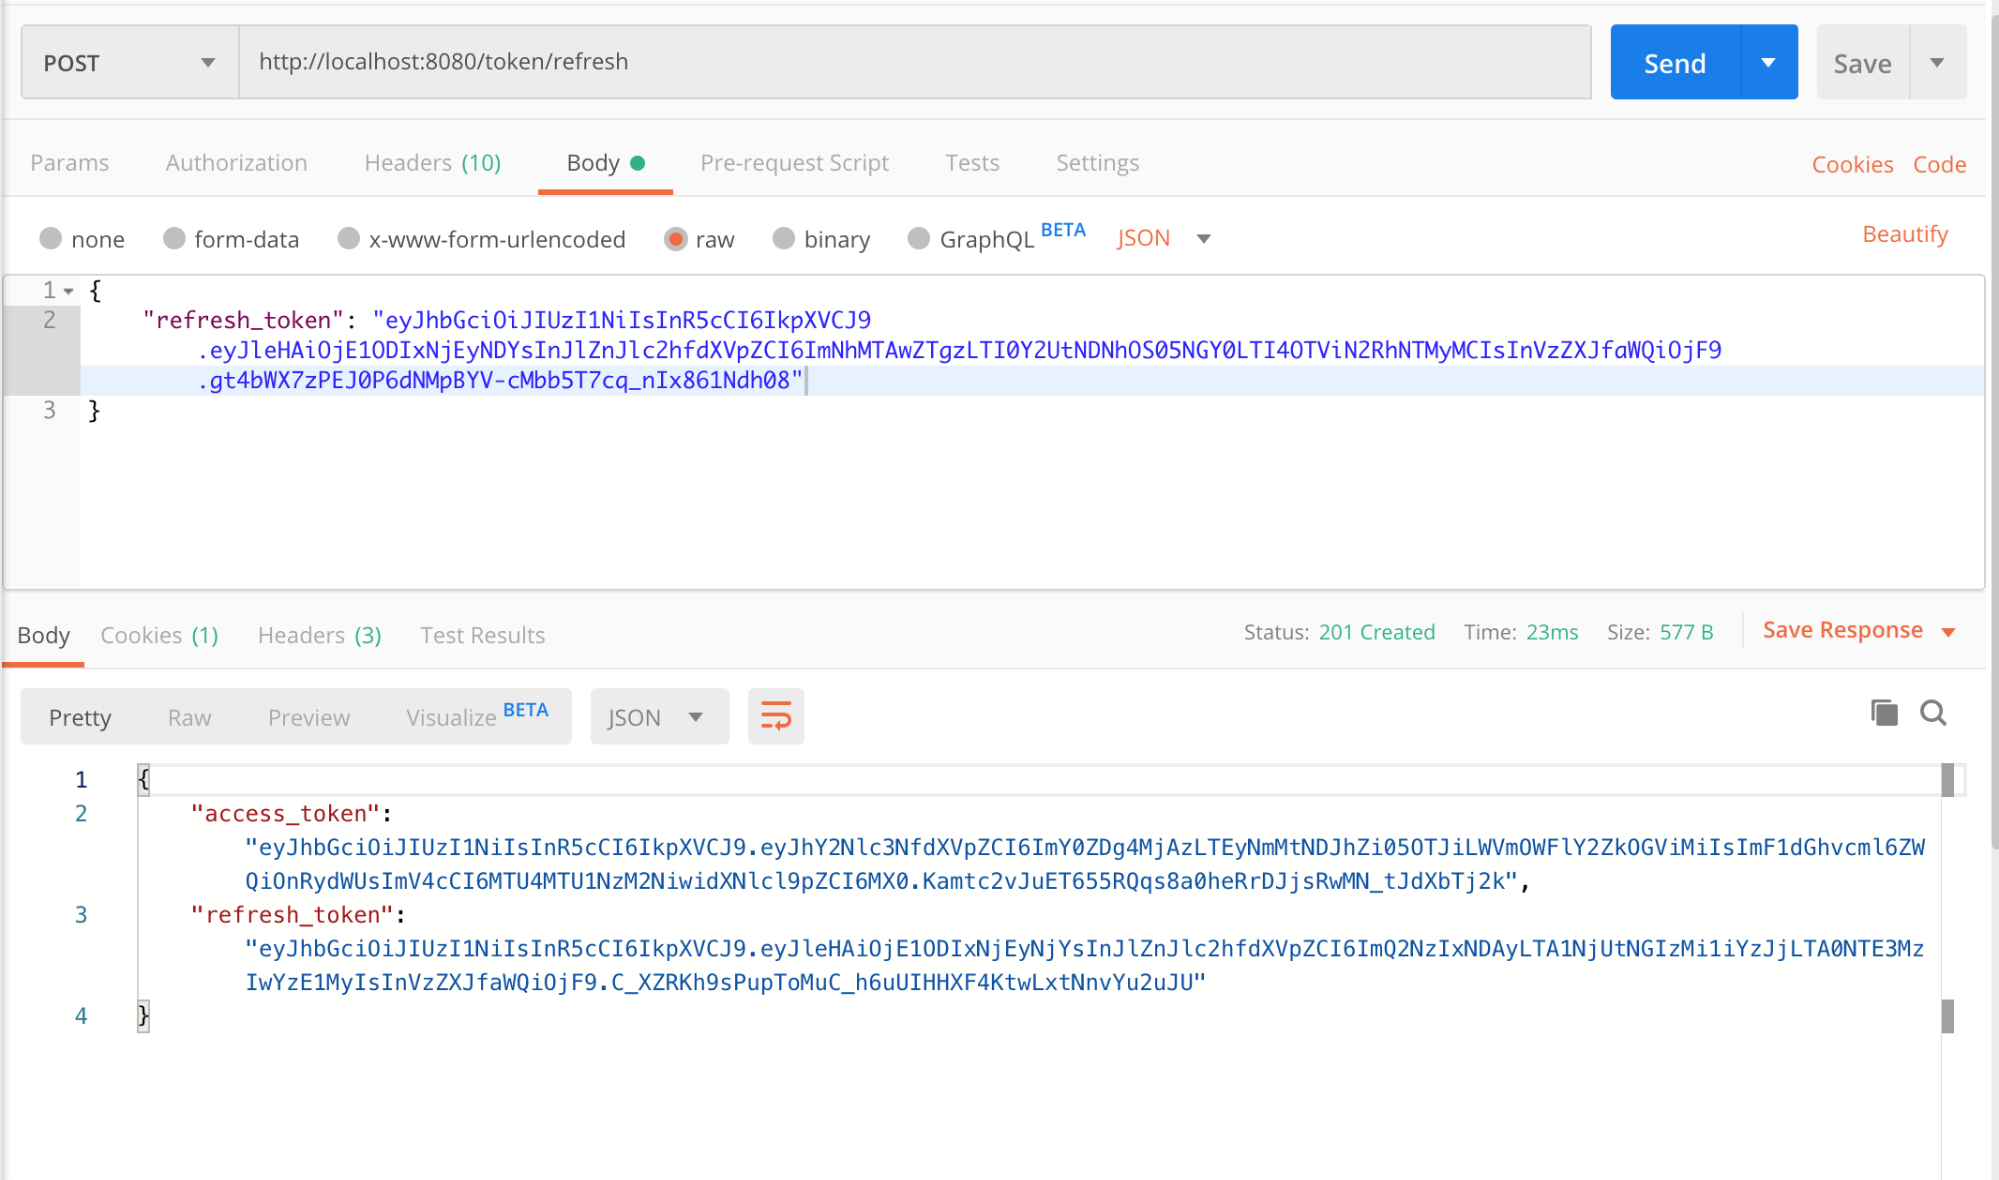 Testing the endpoint with a valid refresh token in Postman